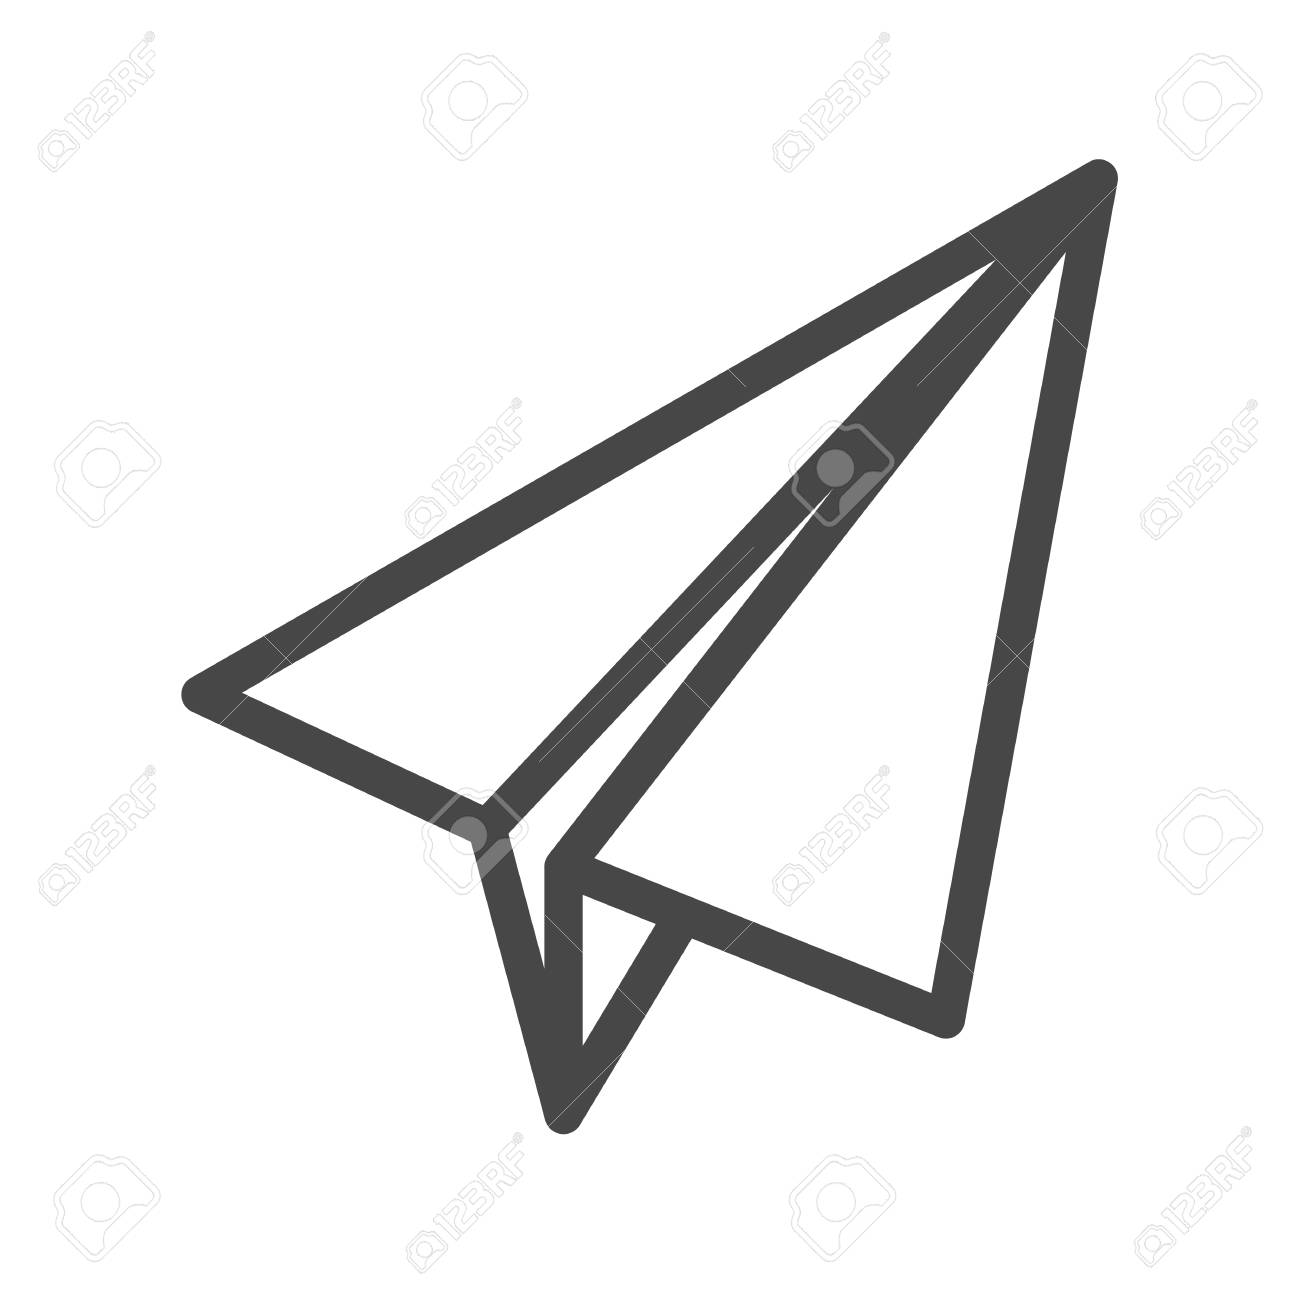 paper airplane thin line vector icon flat icon isolated on the rh 123rf com paper airplane vector freepik paper airplane vector graphic free